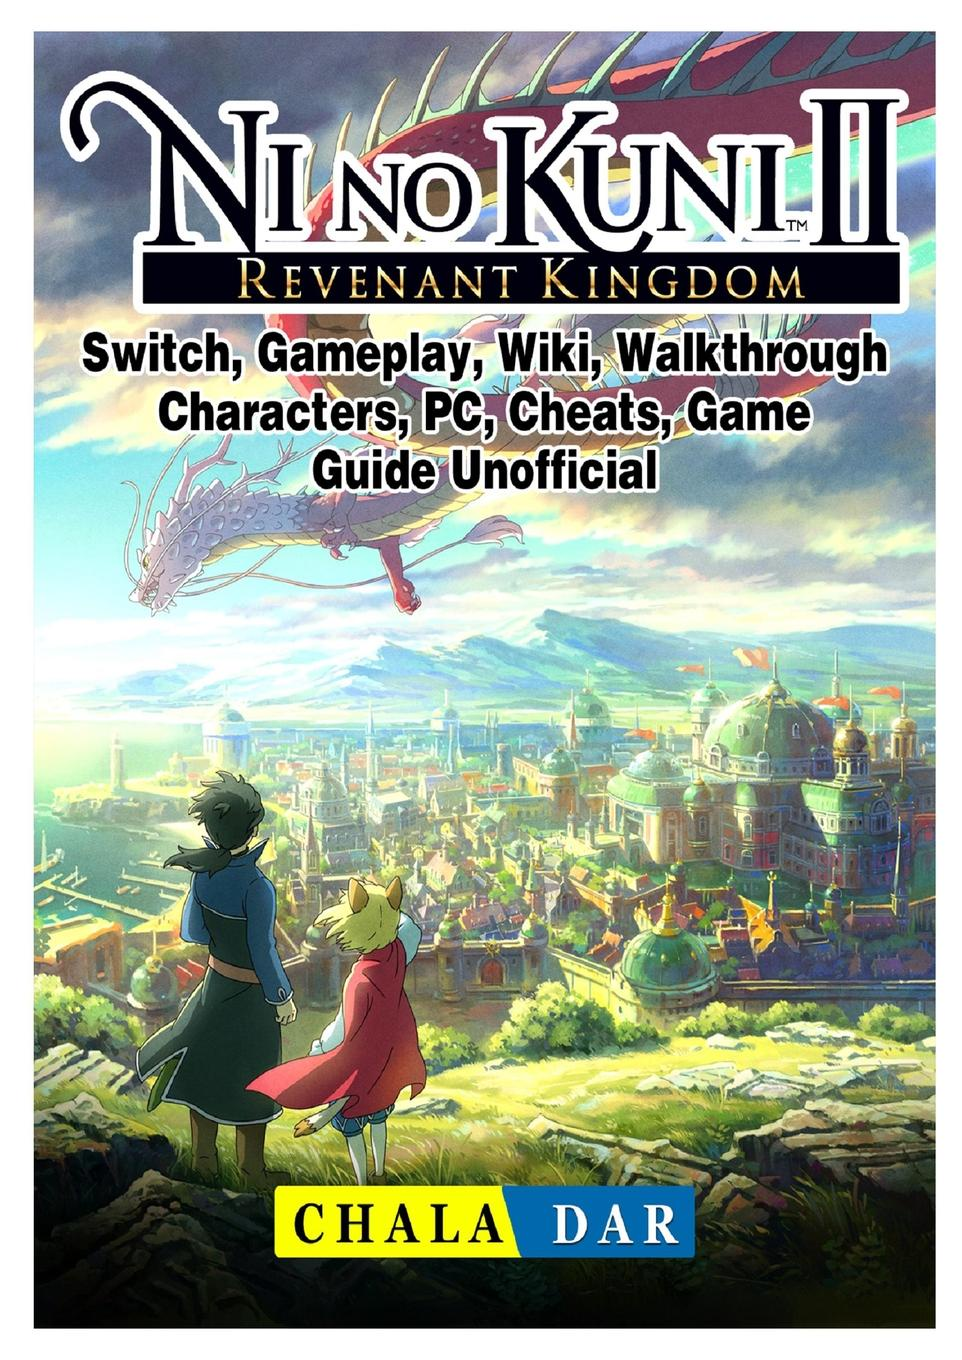 где купить Chala Dar Ni No Kuni II Revenant Kingdom, Switch, Gameplay, Wiki, Walkthrough, Characters, PC, Cheats, Game Guide Unofficial по лучшей цене